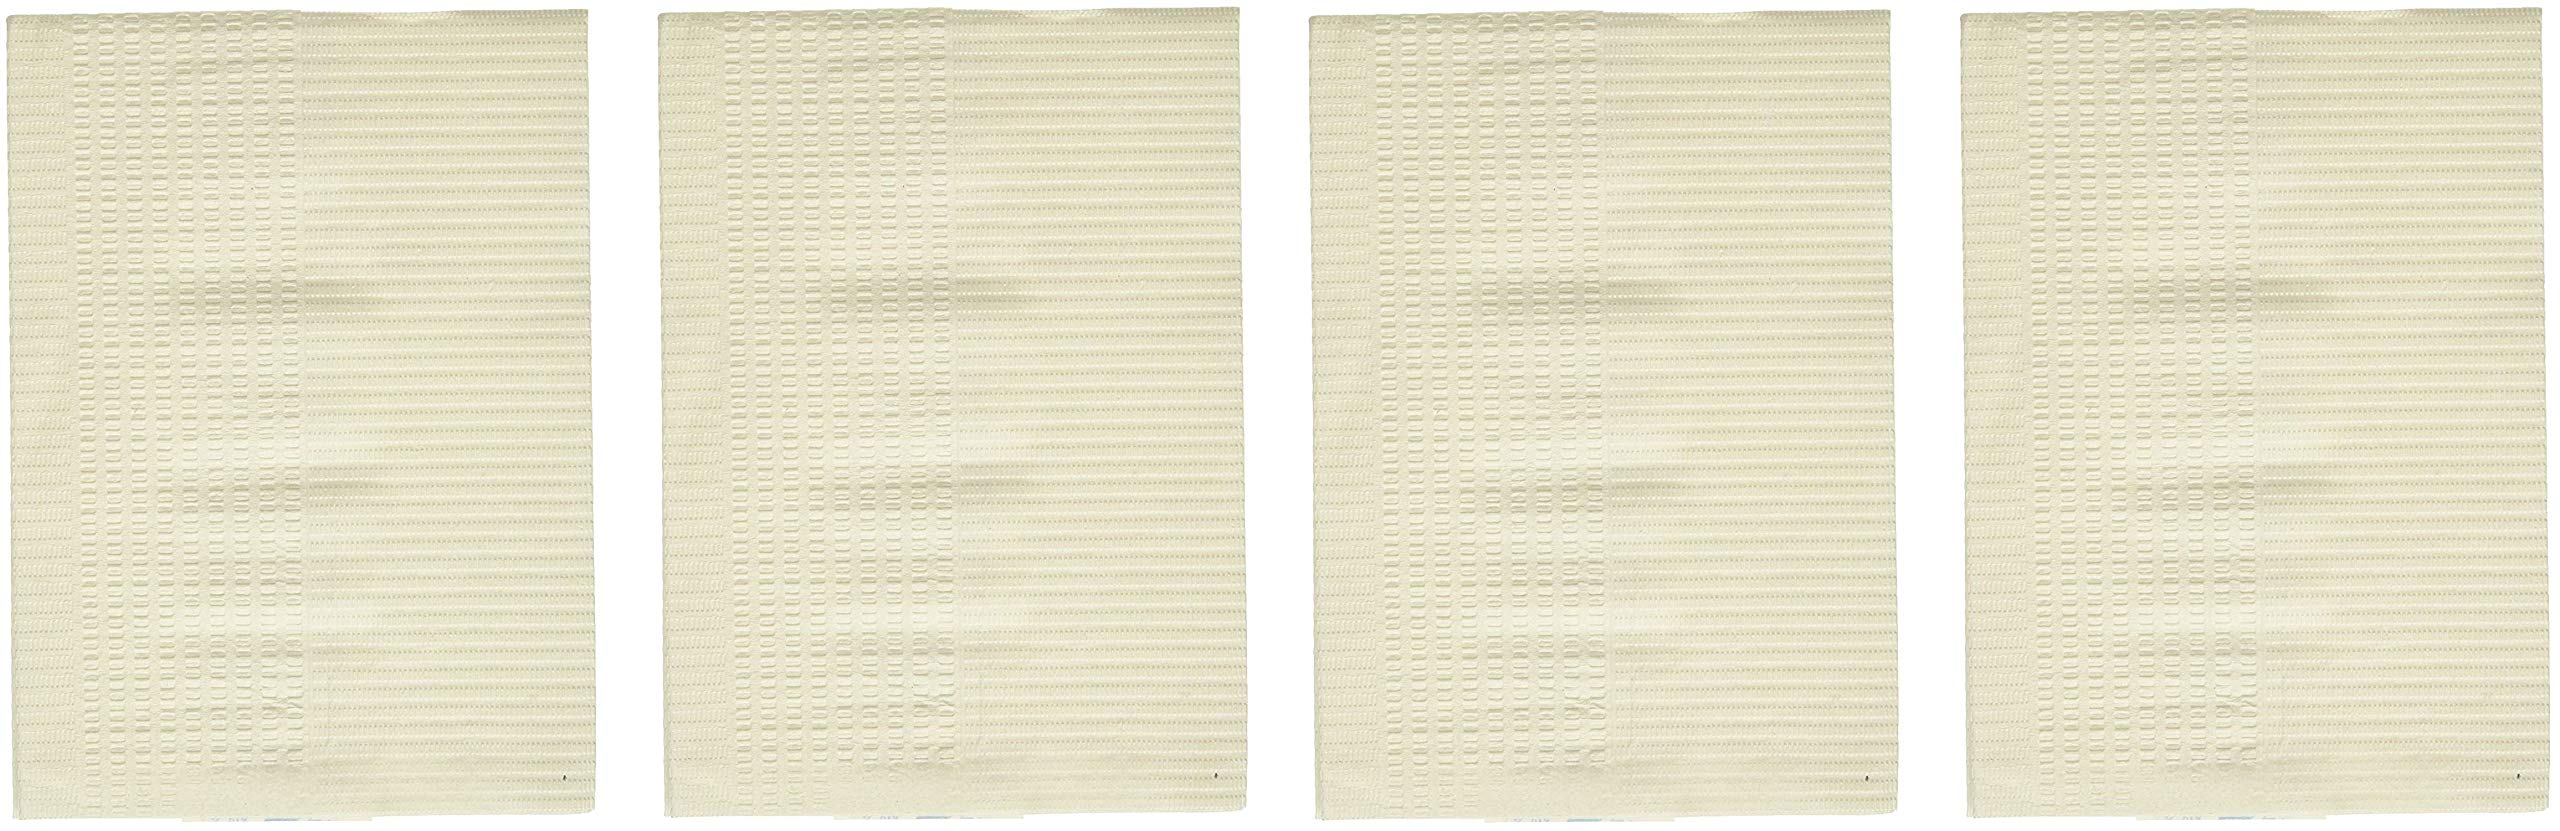 Napkleen Disposable Clothing Protector, 50 Sheets (4-(Pack))